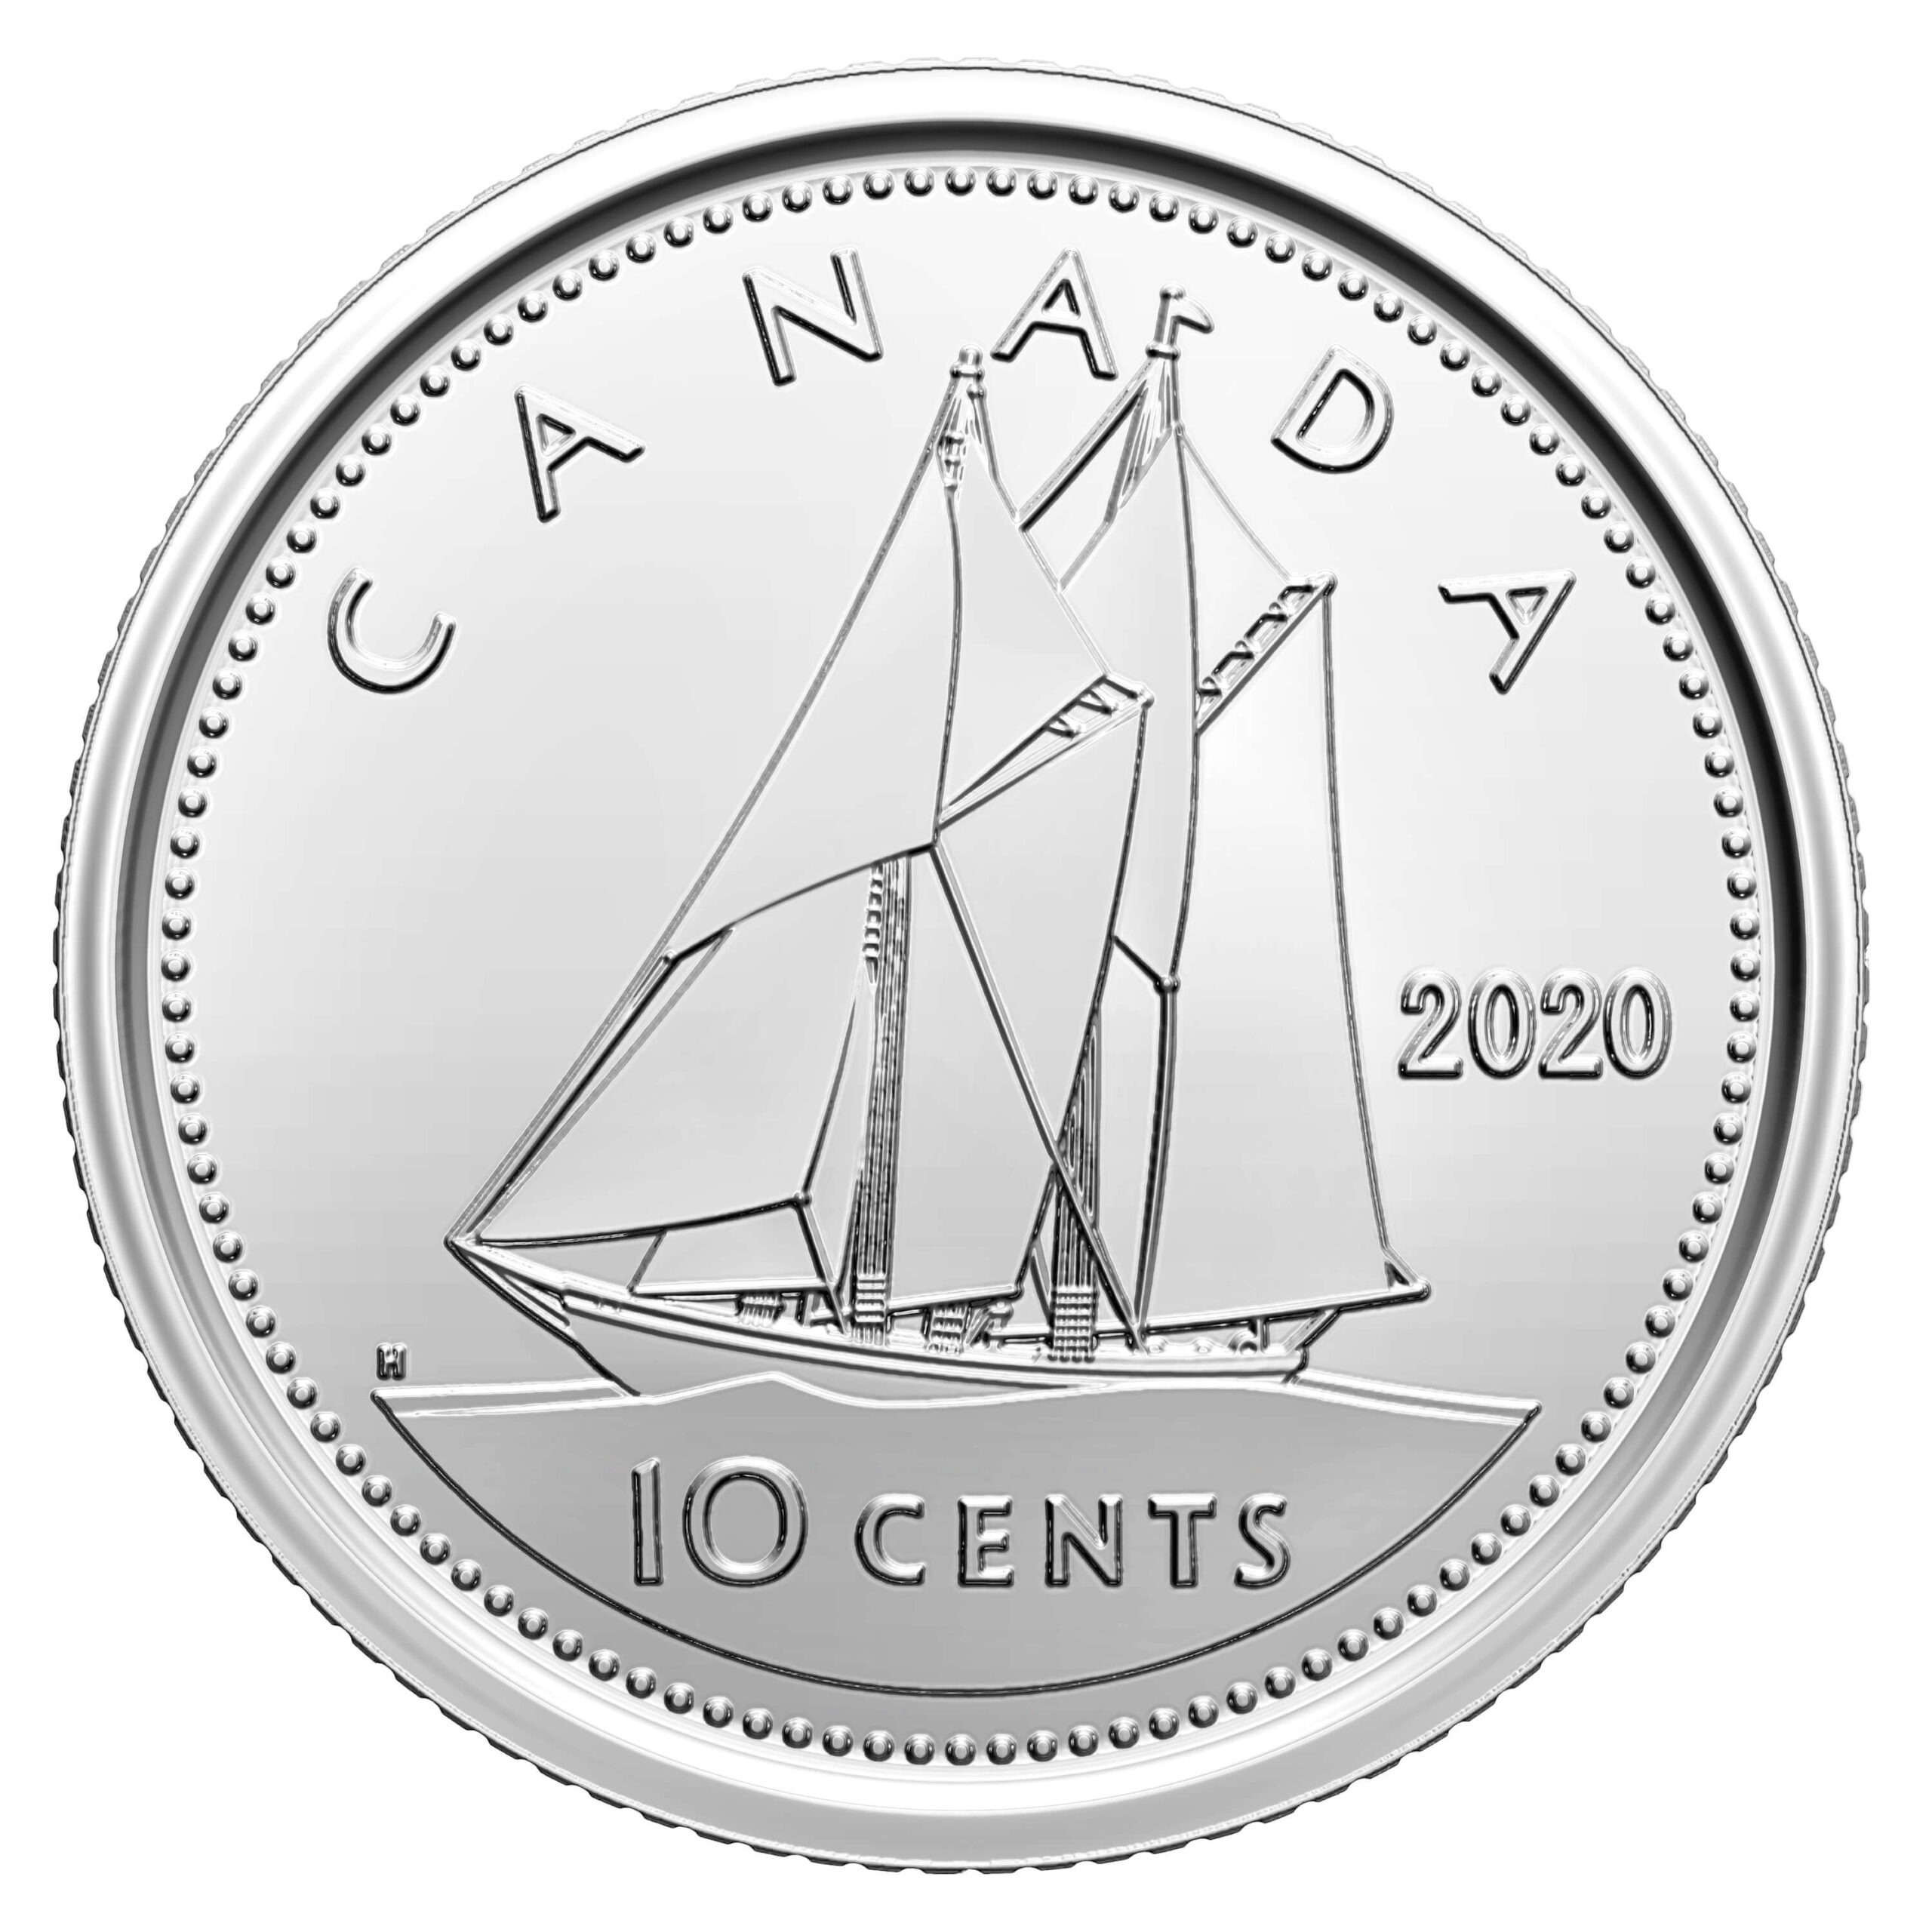 CA 10 Cents 2020